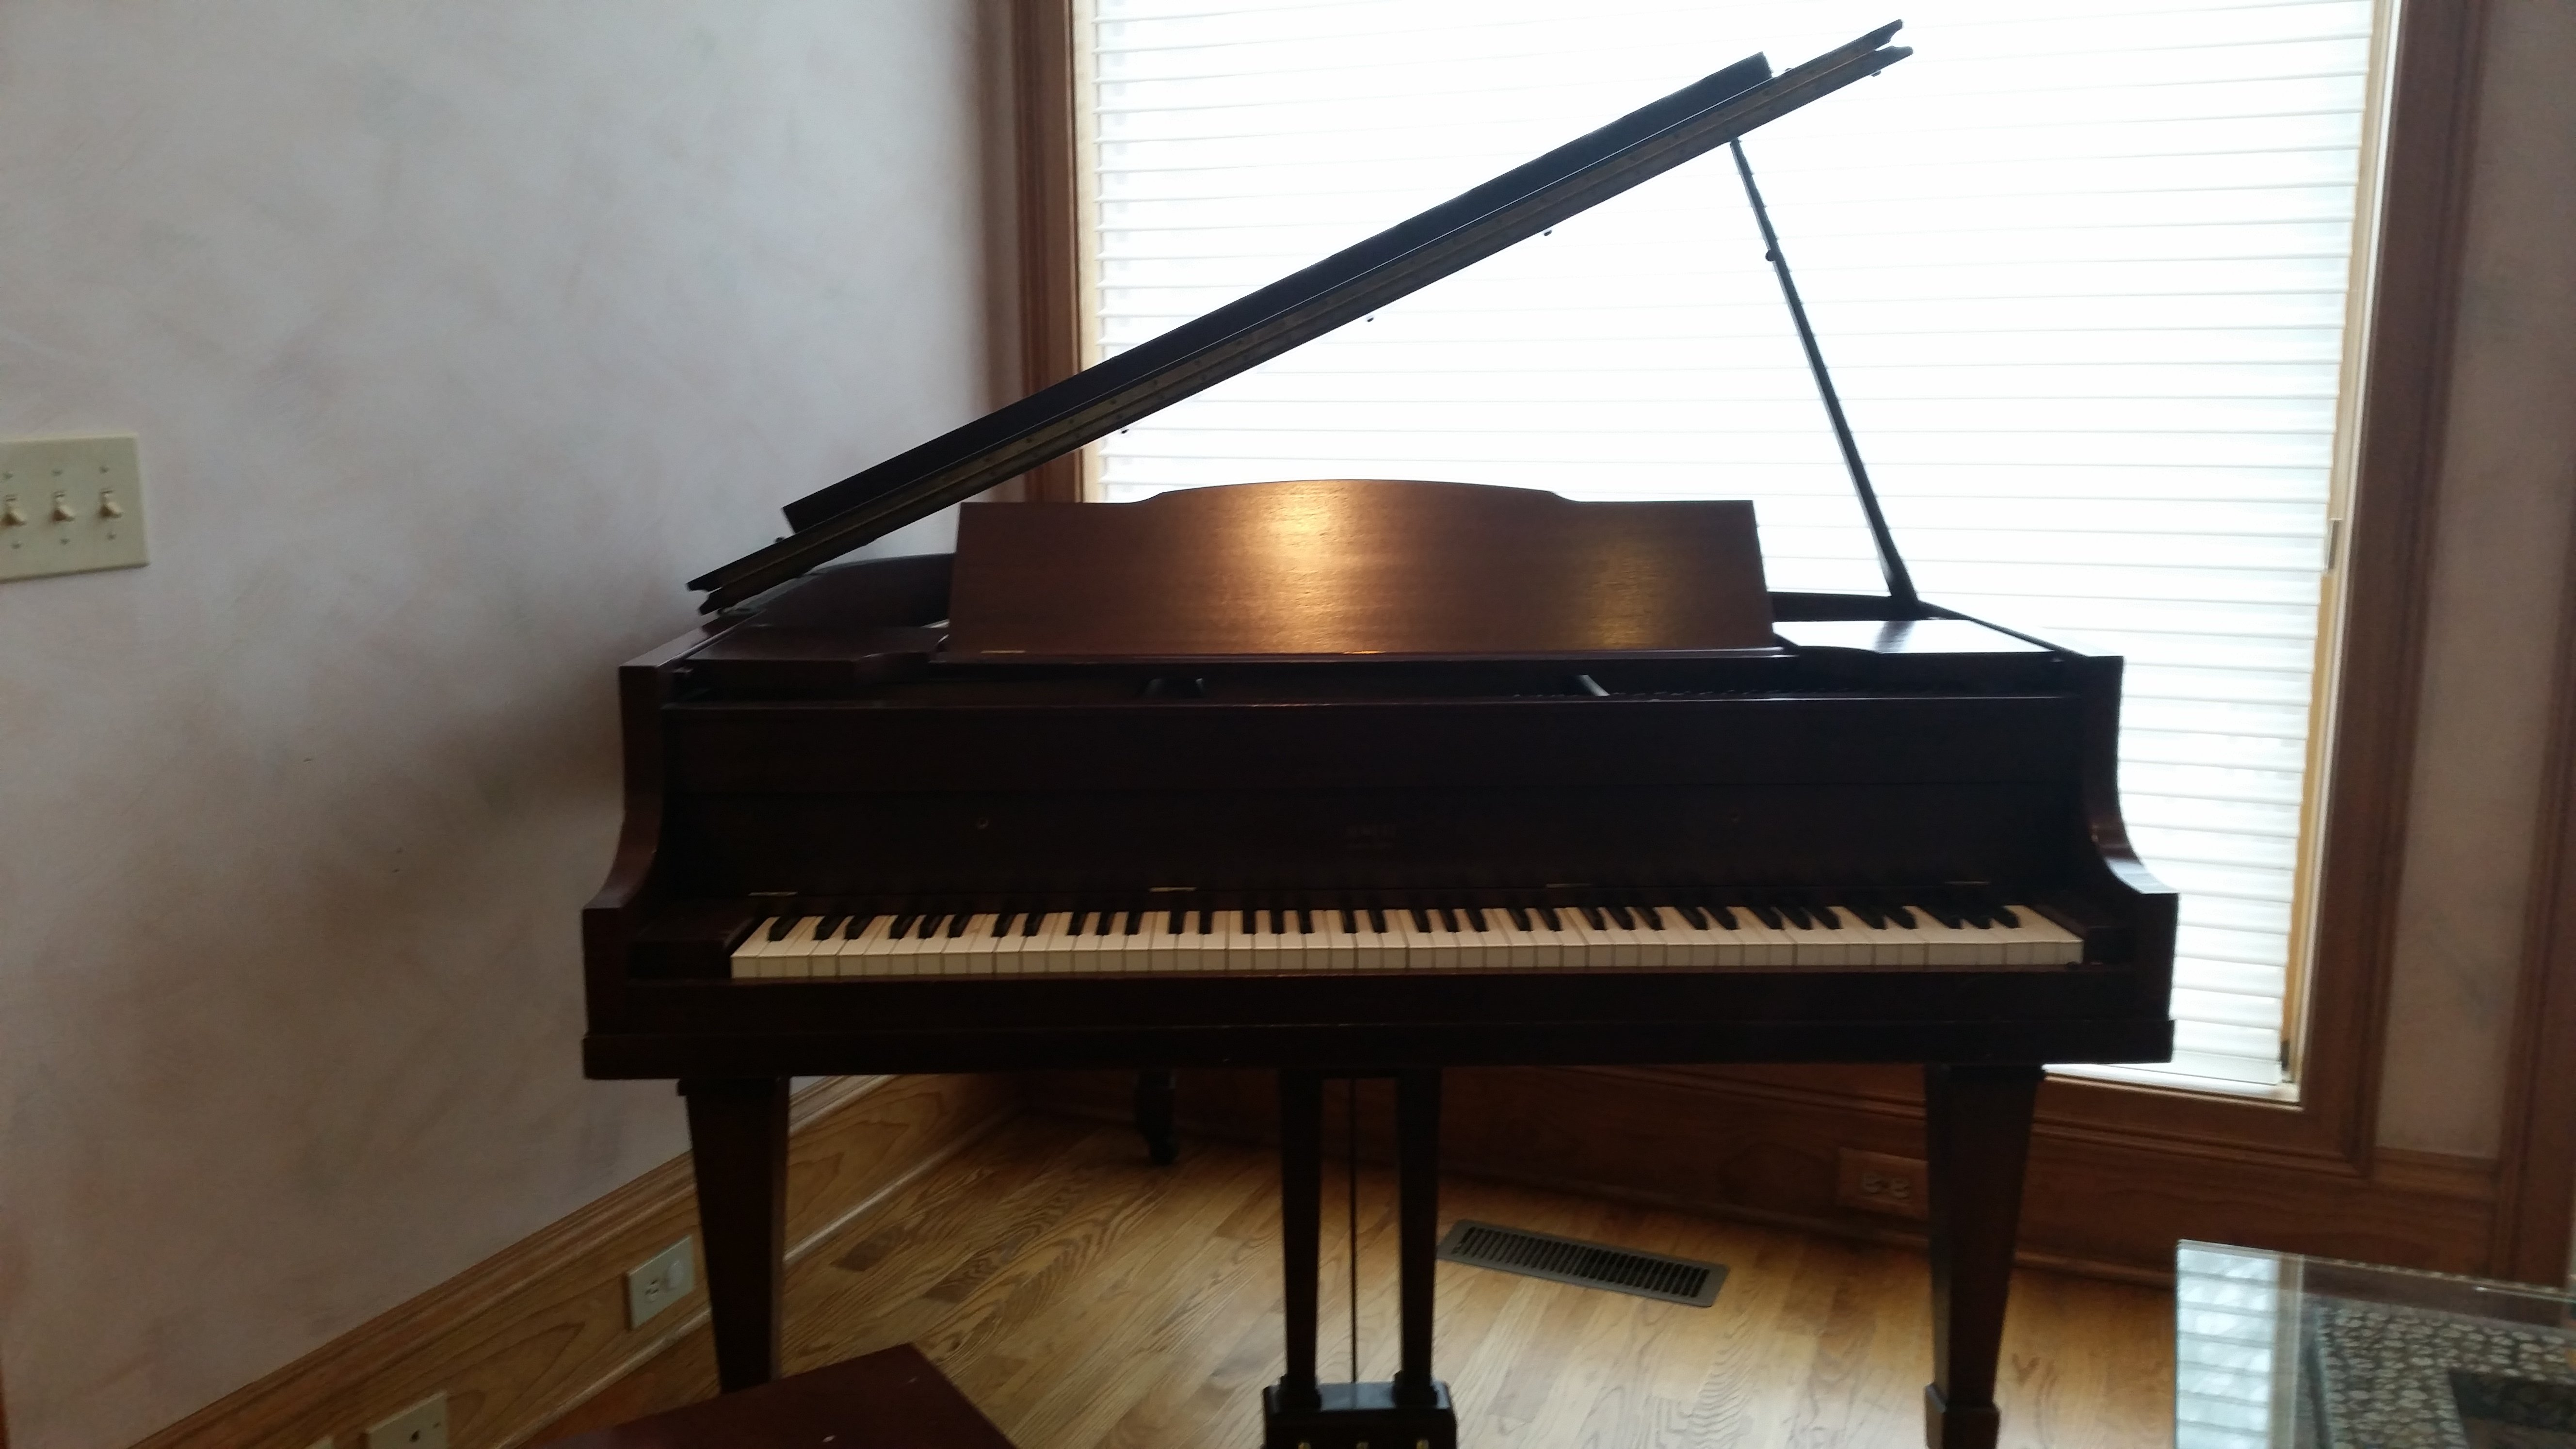 I Have A Jewett Baby Grand Piano Serial Number 1001 It Is Over 40